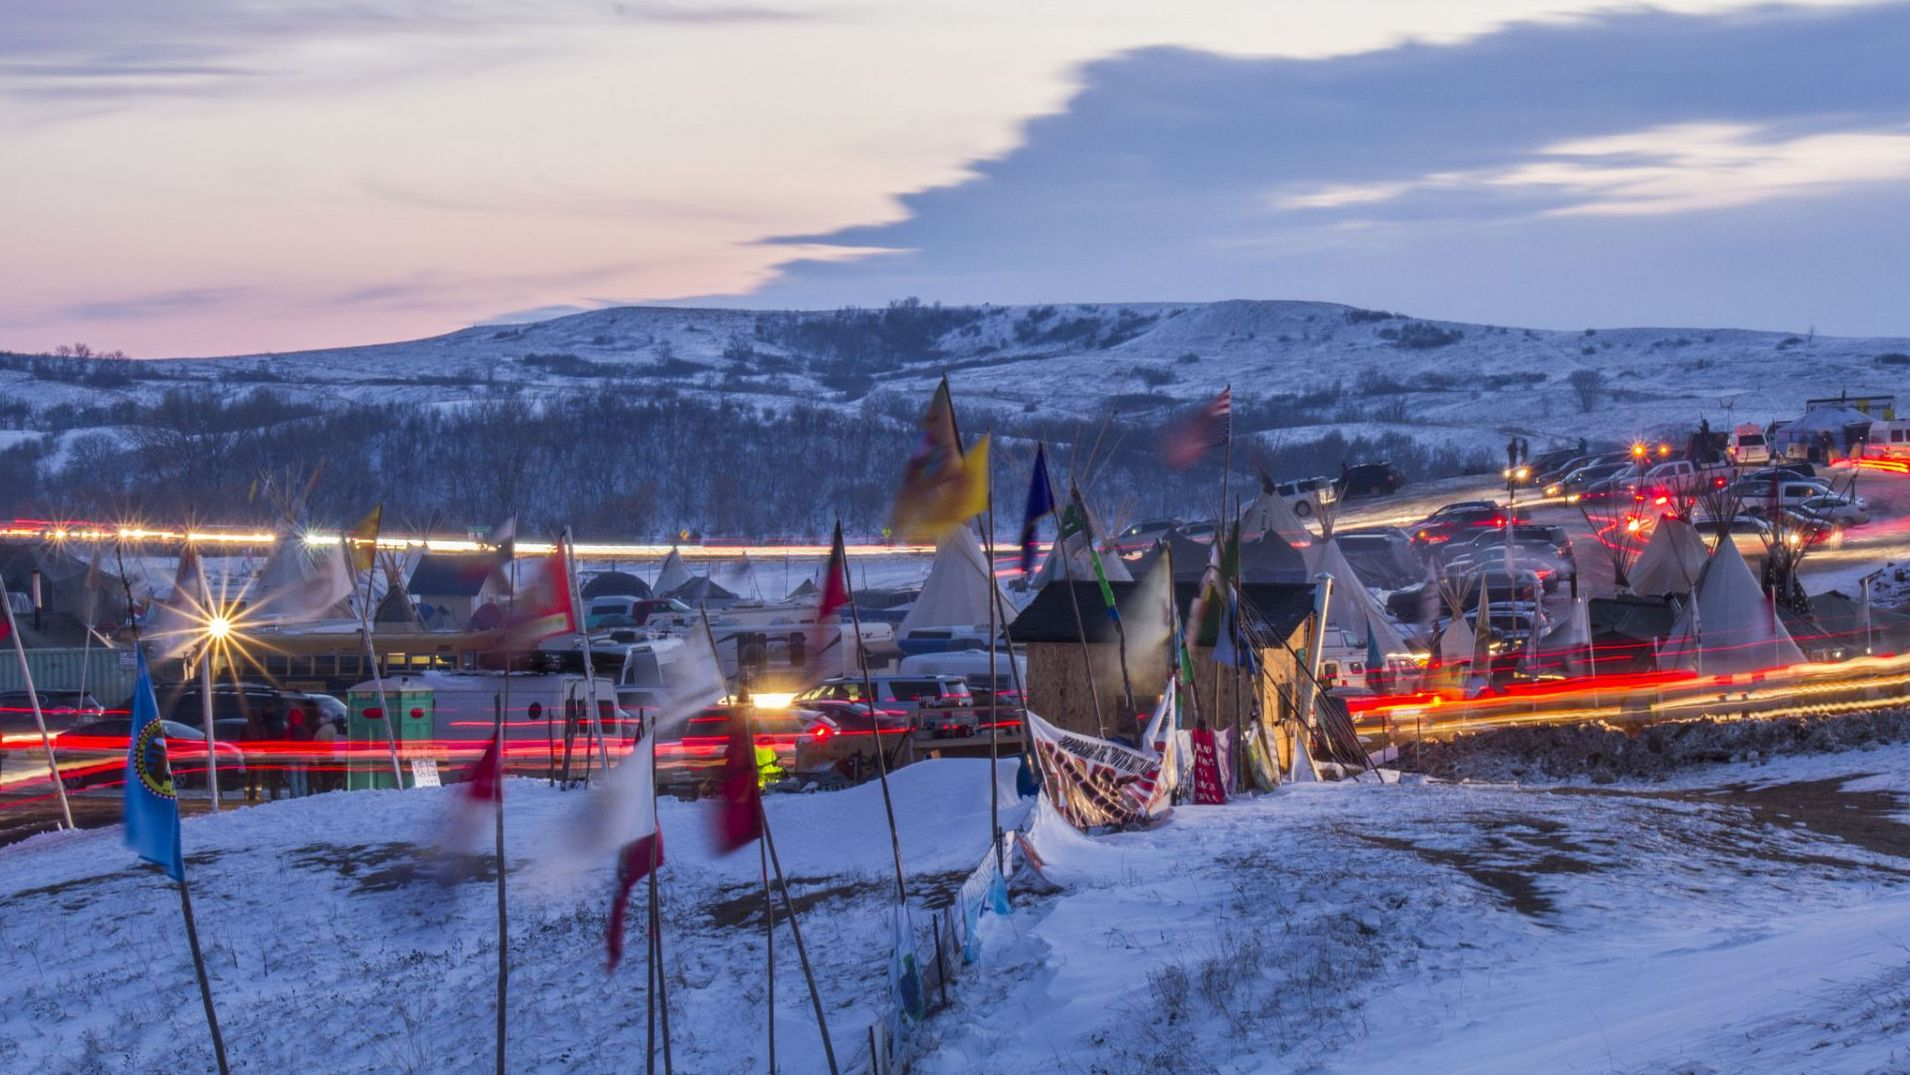 Photo of Standing Rock encampment taken on December 3, 2016, by Dark Sevier/Flickr. Not associated with film Beyond Standing Rock.